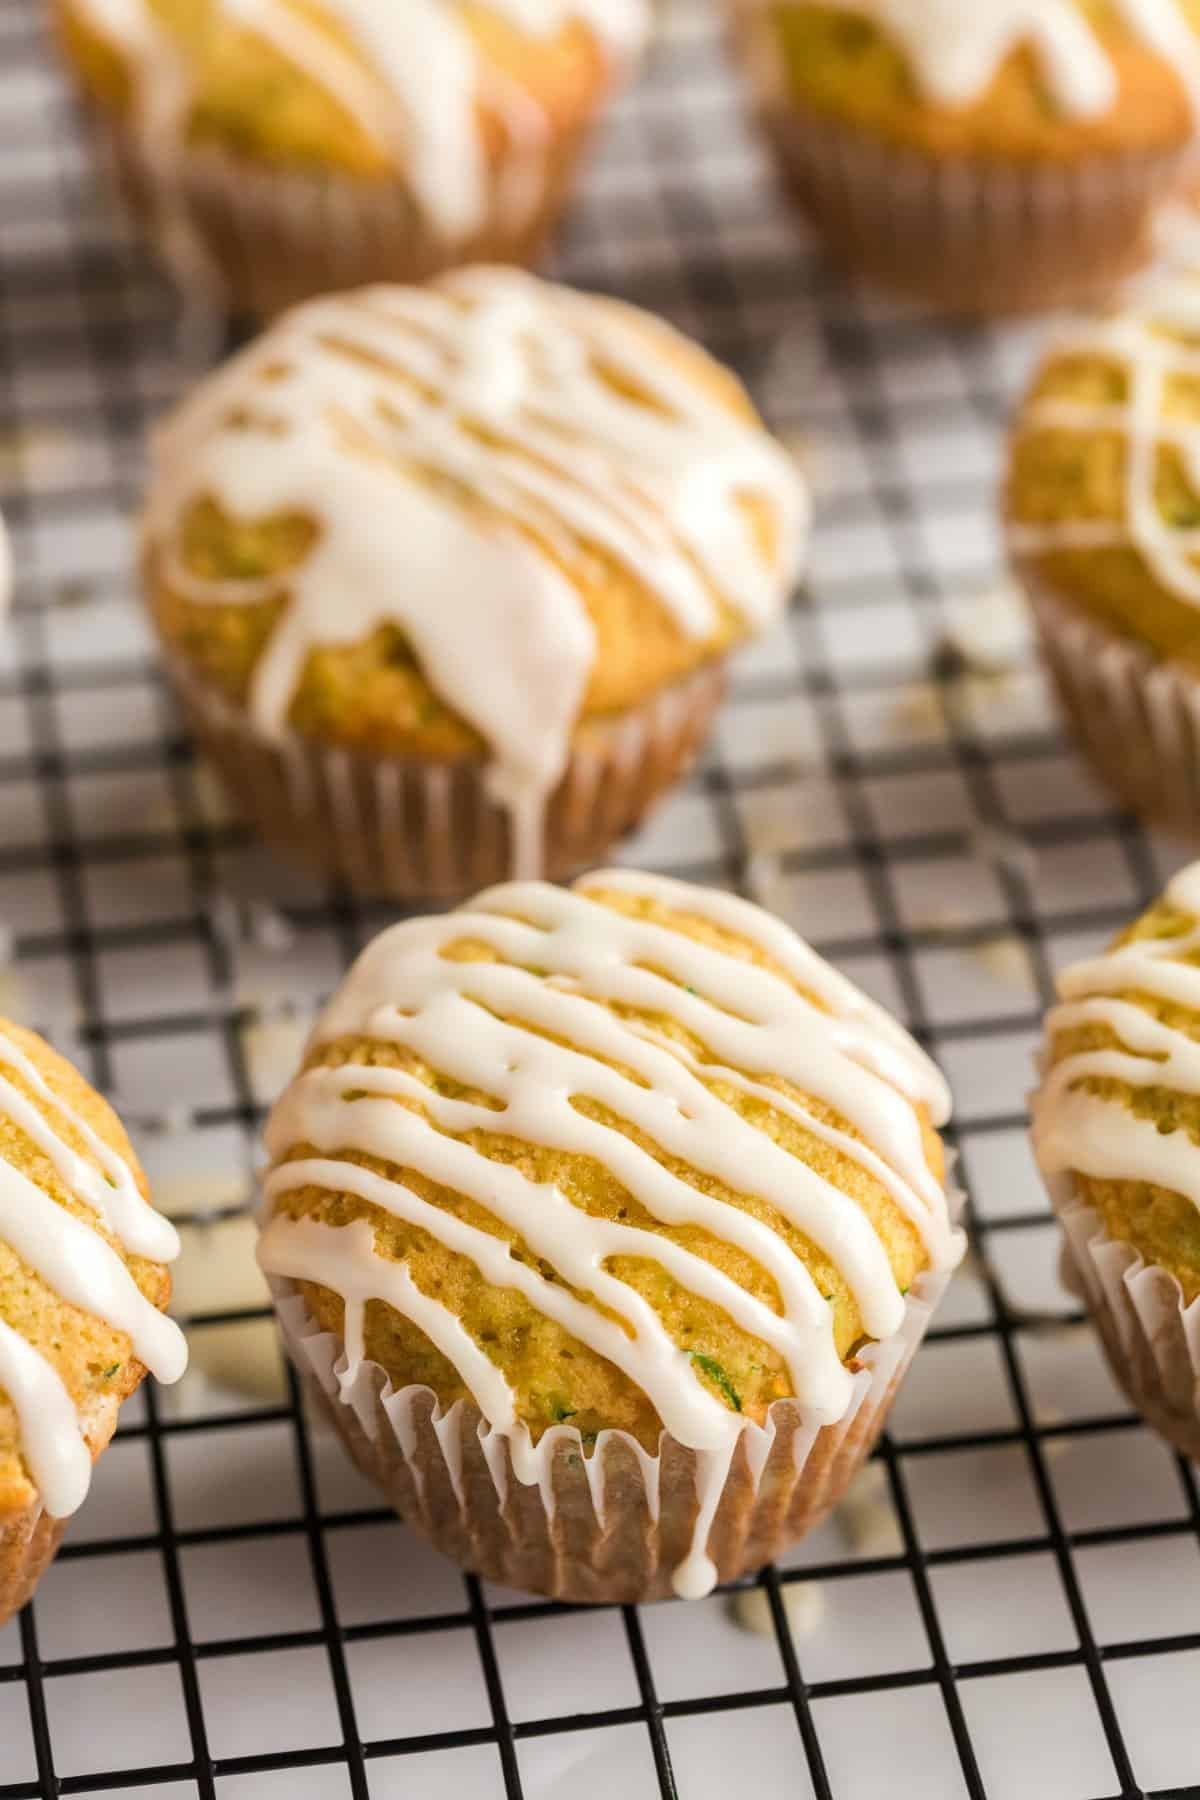 Zucchini muffins on a wire rack drizzled with orange glaze.